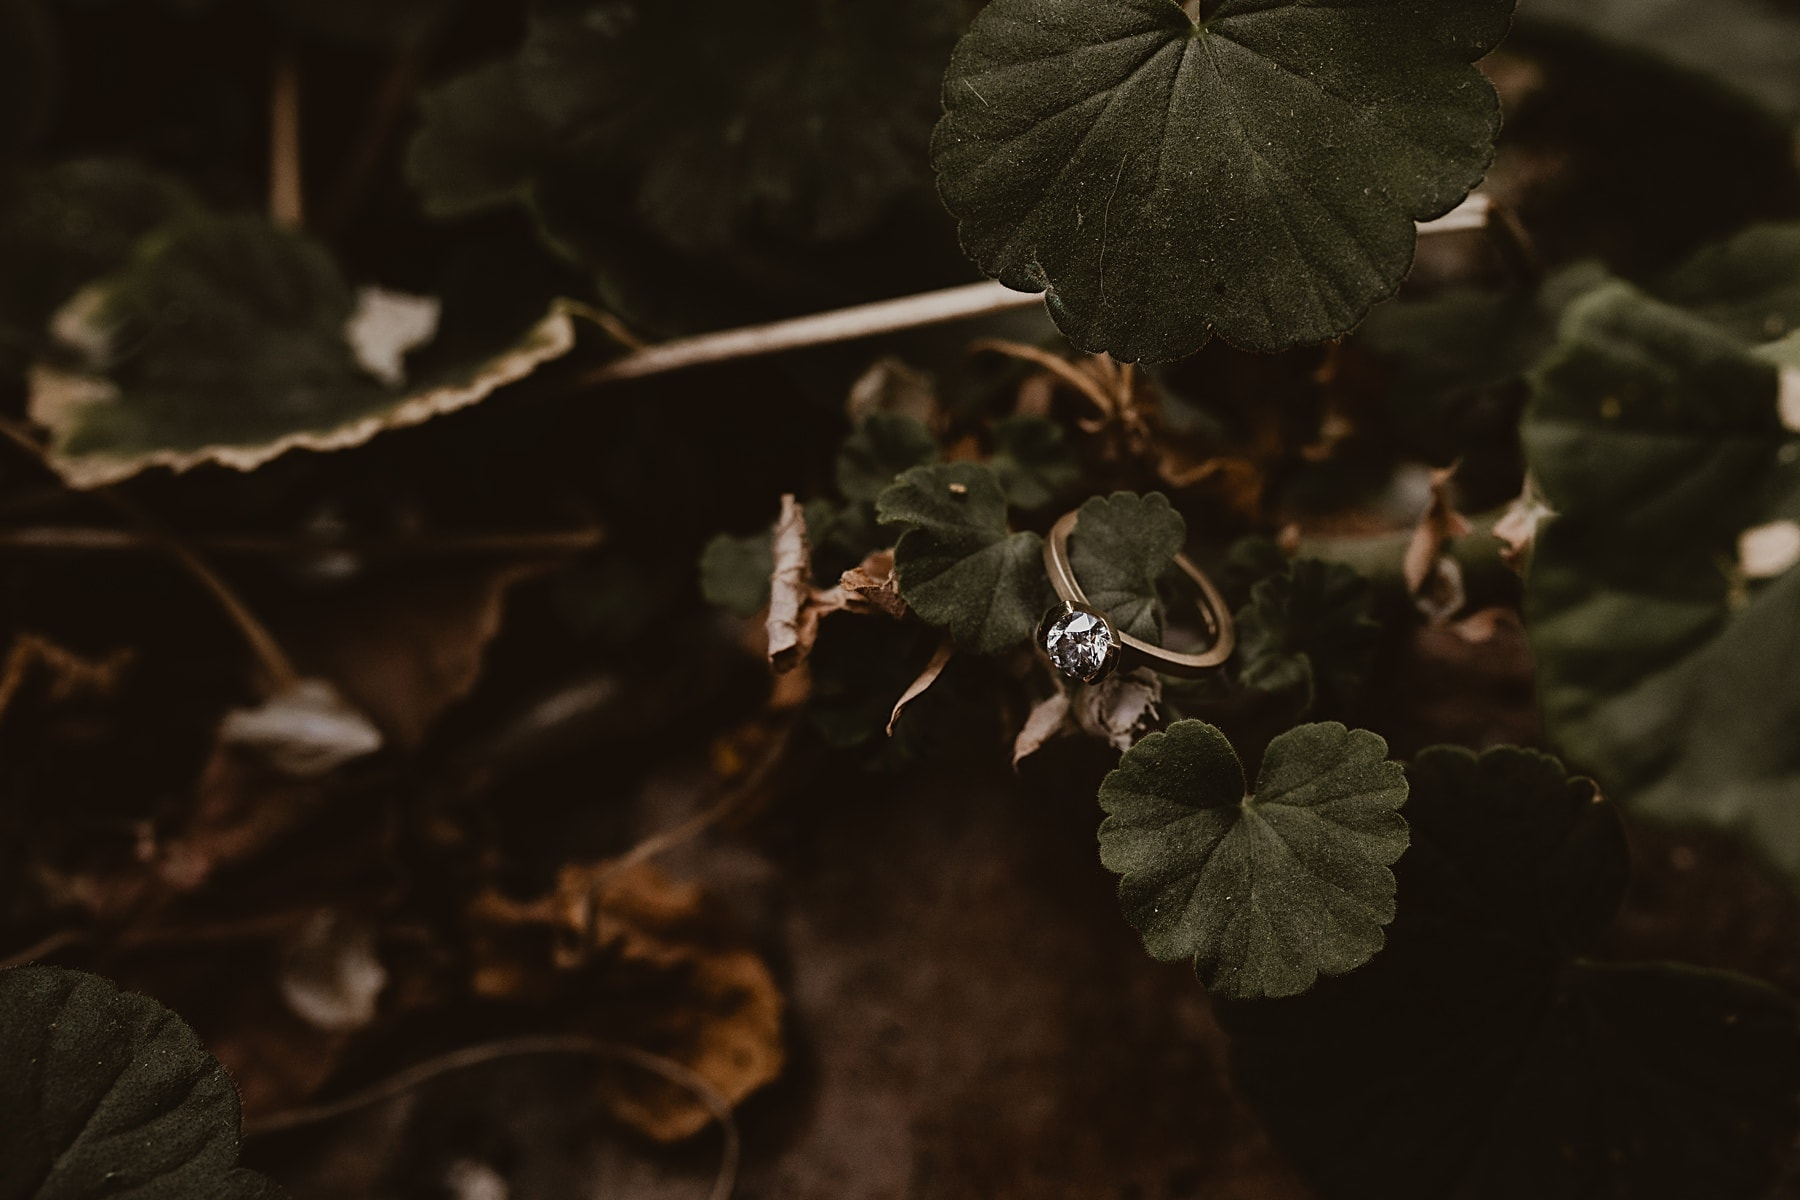 Wedding ring in foliage